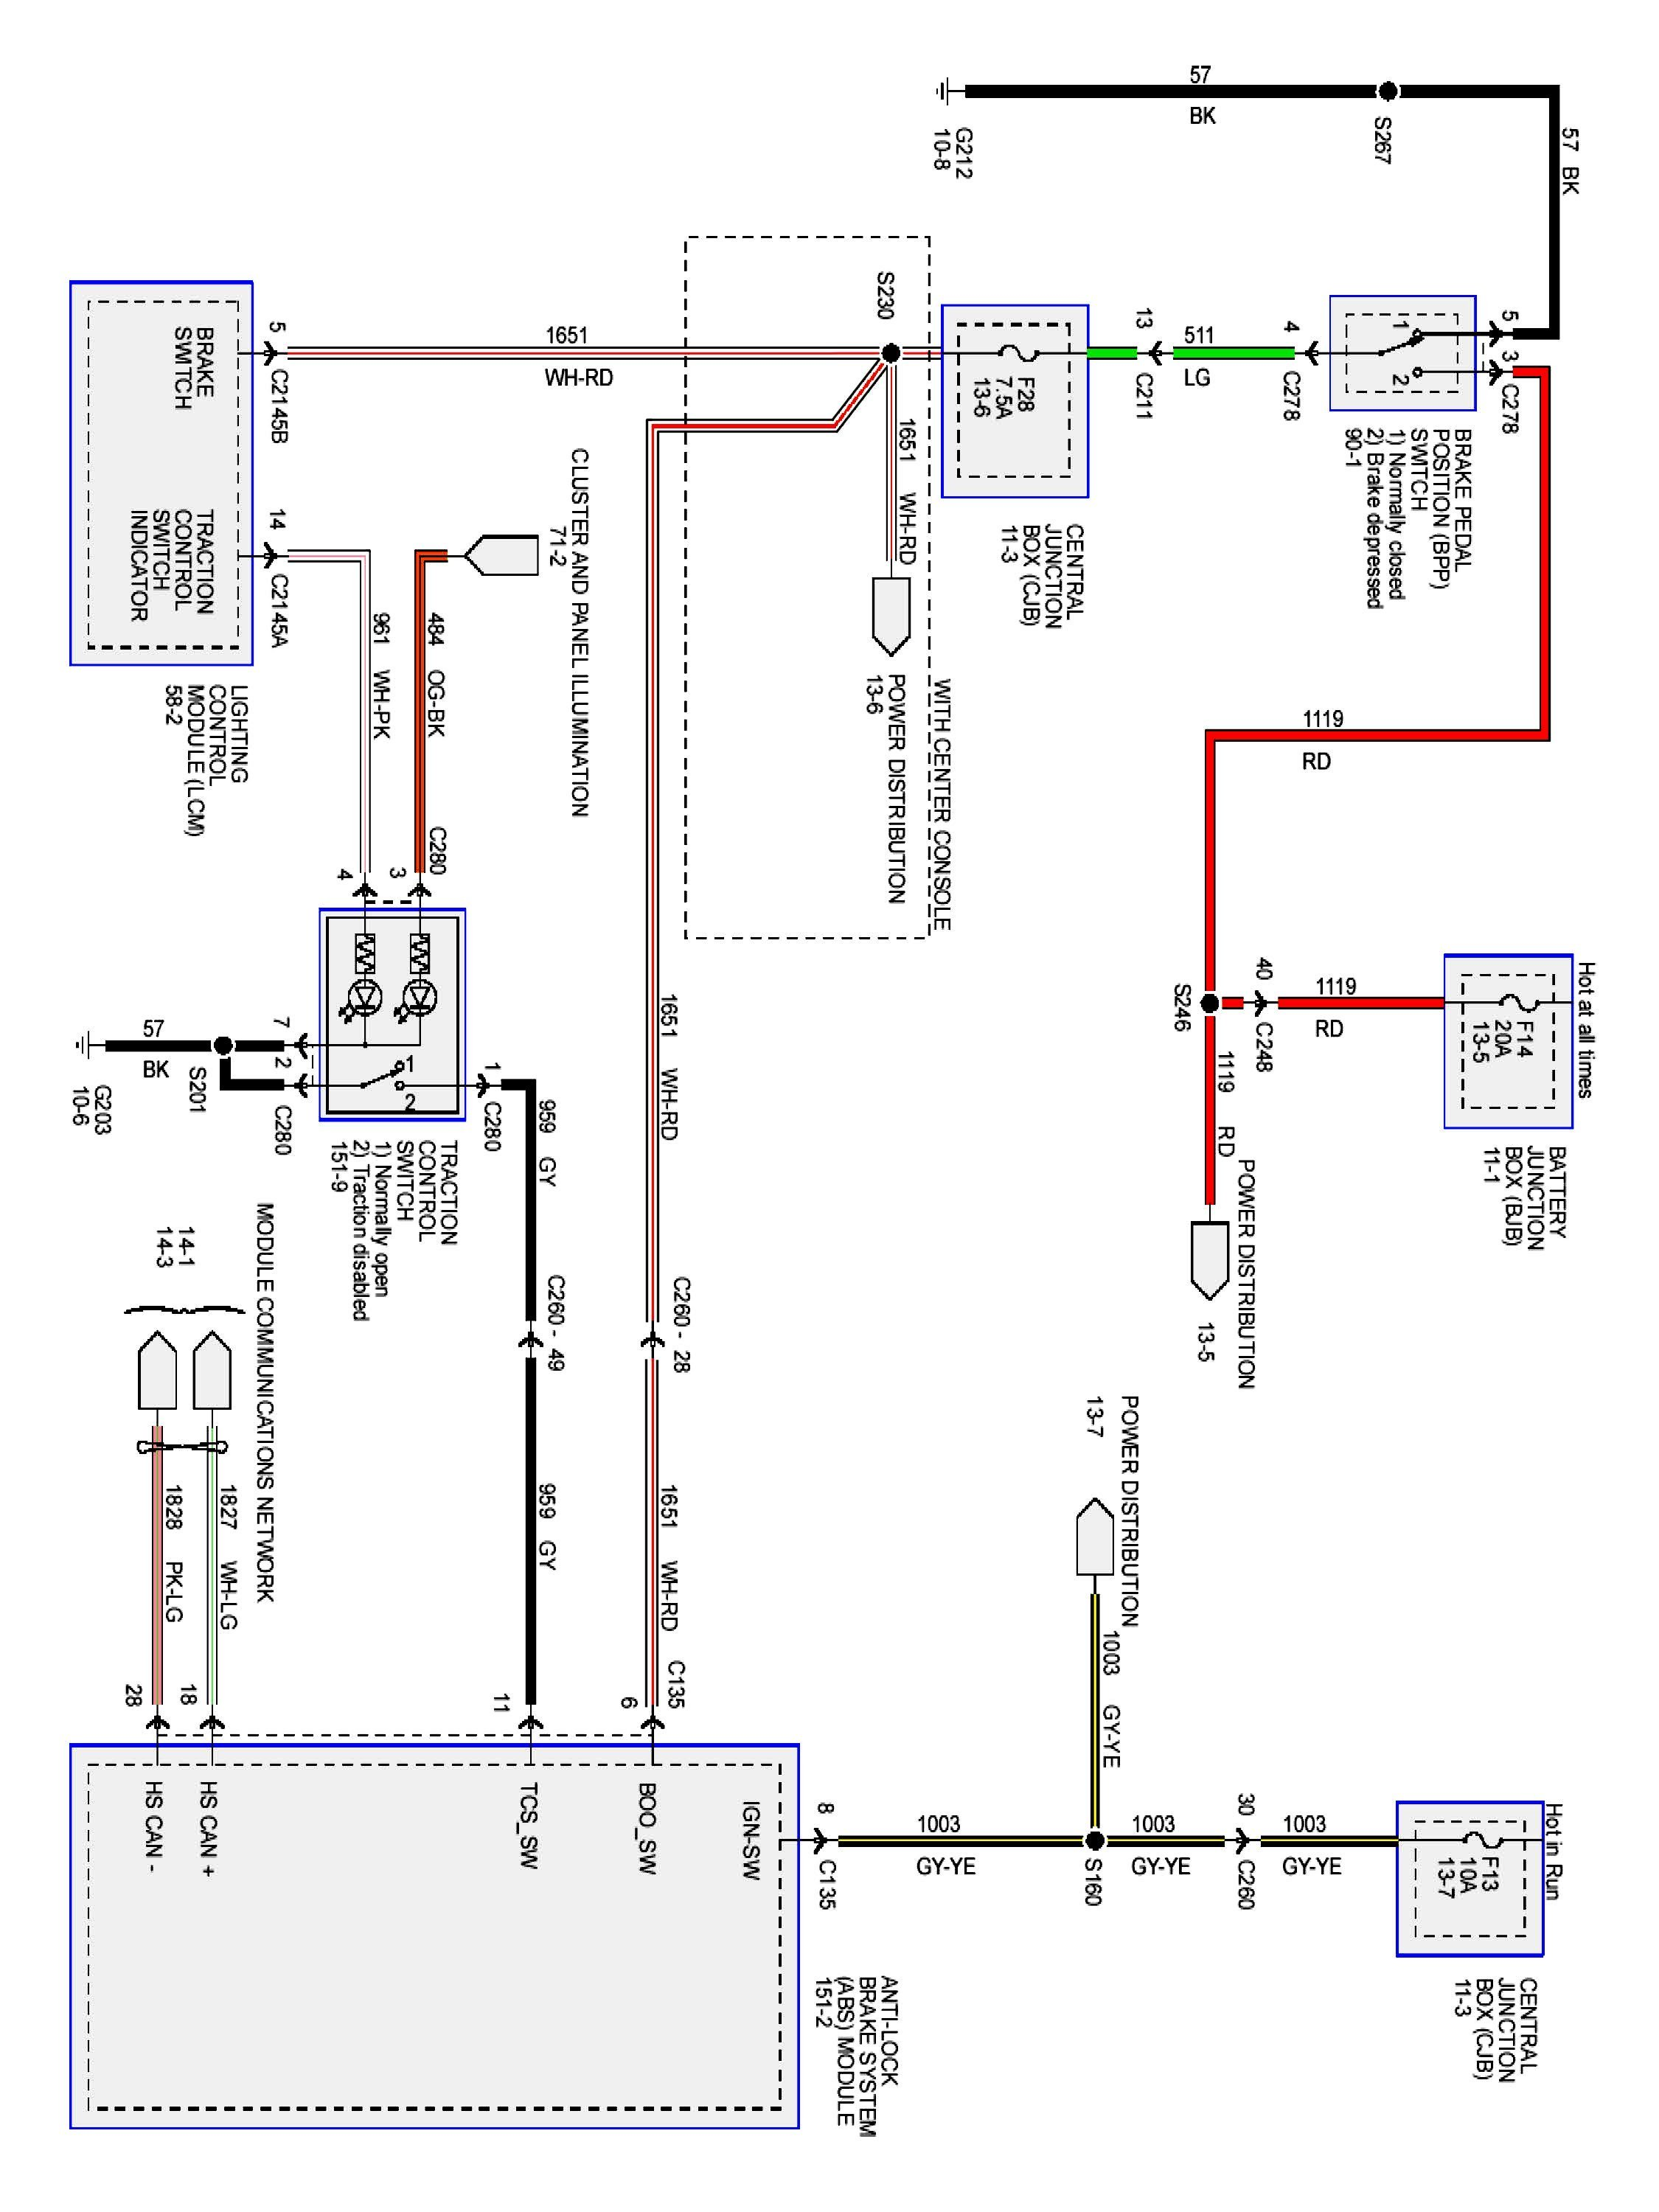 12012 ford crown victoria wiring diagram abs   wiring diagrams post forum  wiring diagram library